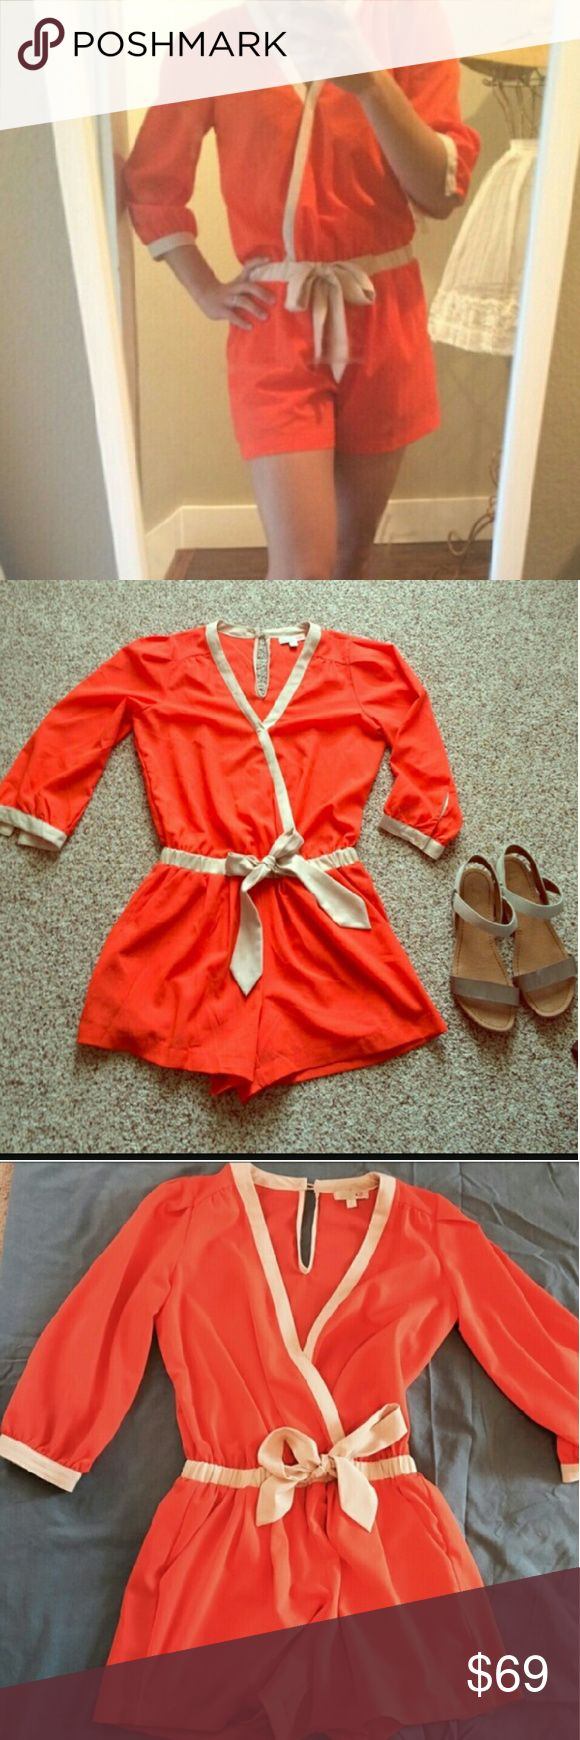 "Gianni Bini Orange Romper Cute and prissy romper is perfect for spring and summer flimgs. Slant pockets, elasticized waist. 3"" inseam for ample coverage. Gianni Bini Pants Jumpsuits & Rompers"